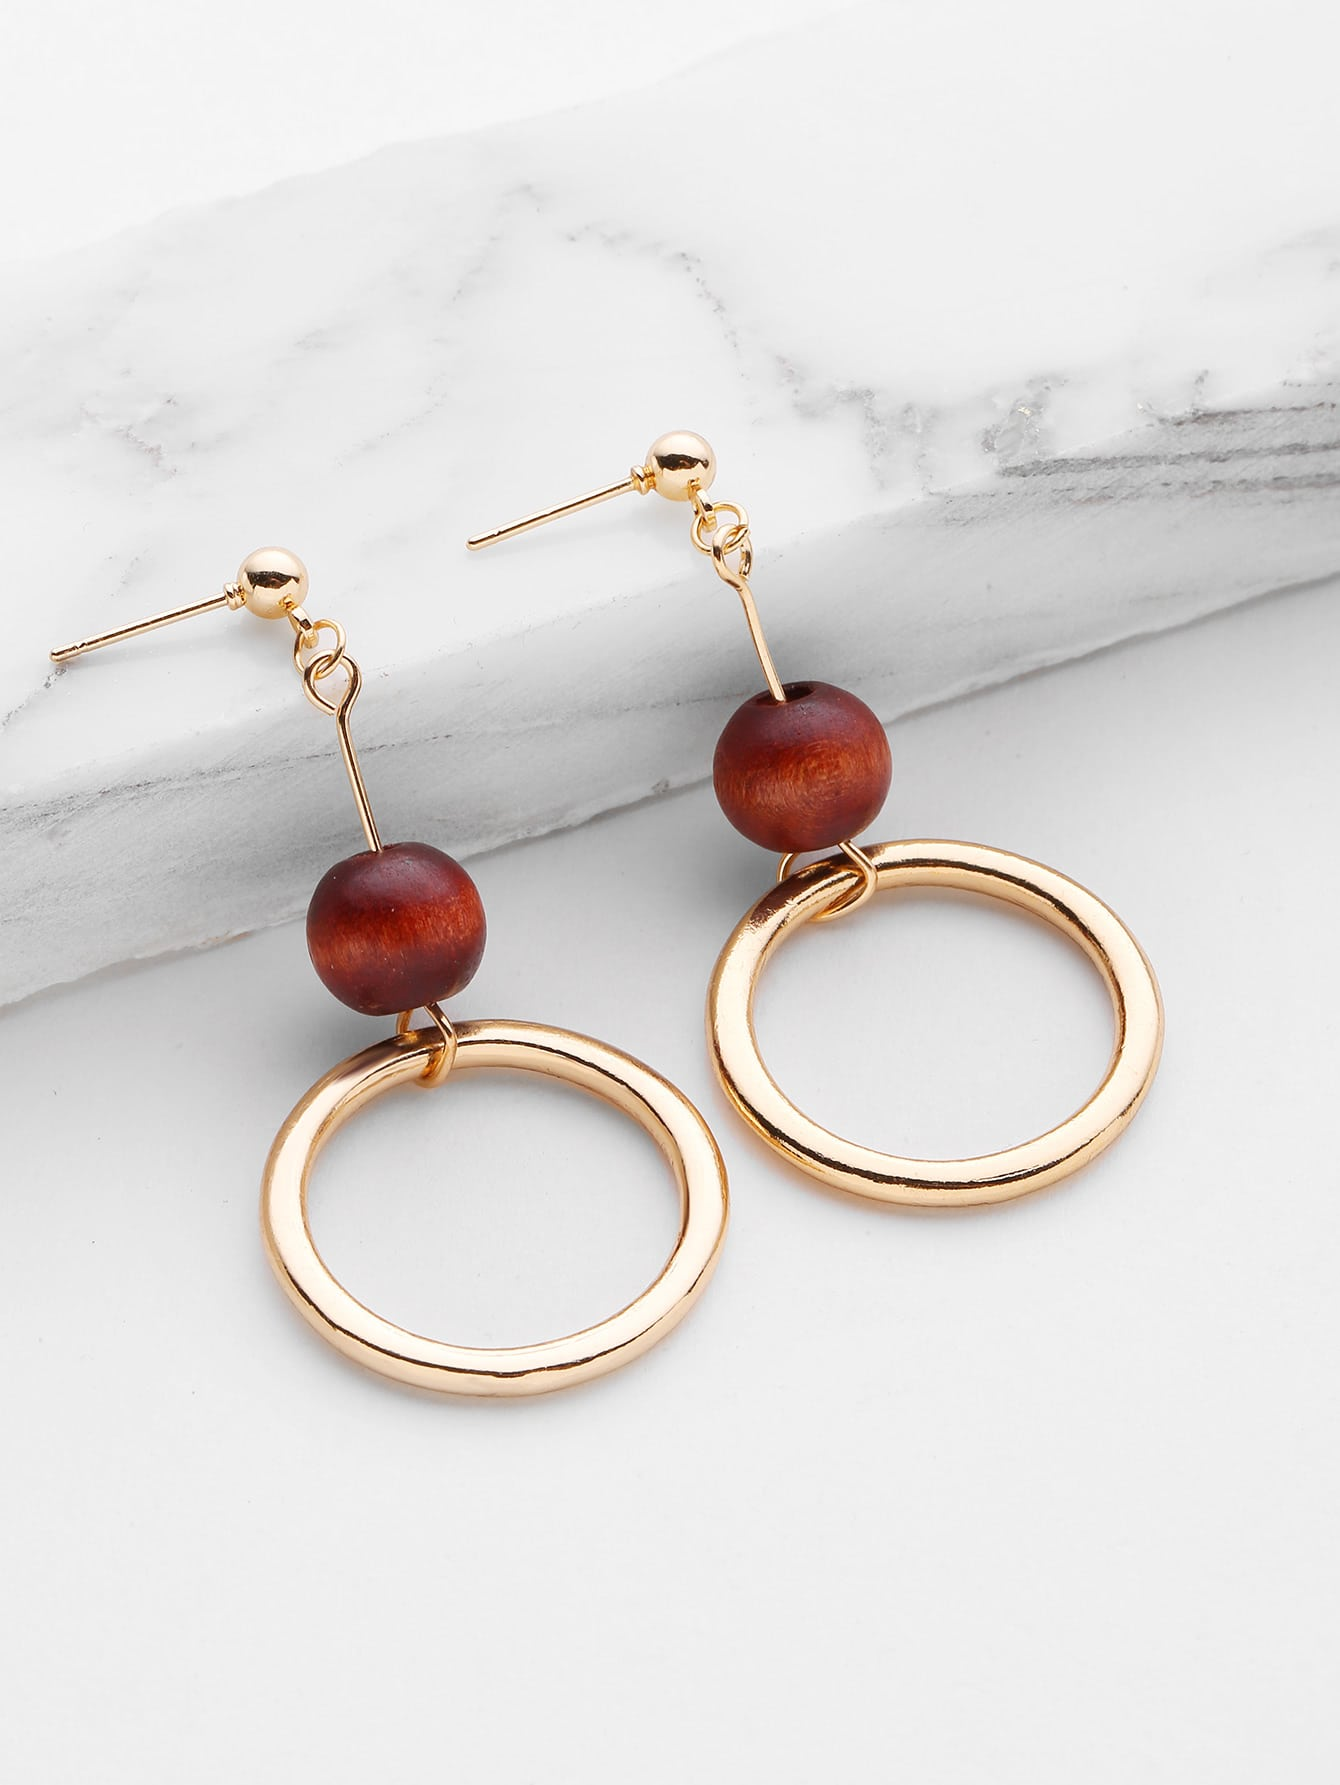 Ring Design Drop Earrings With Wood Ball